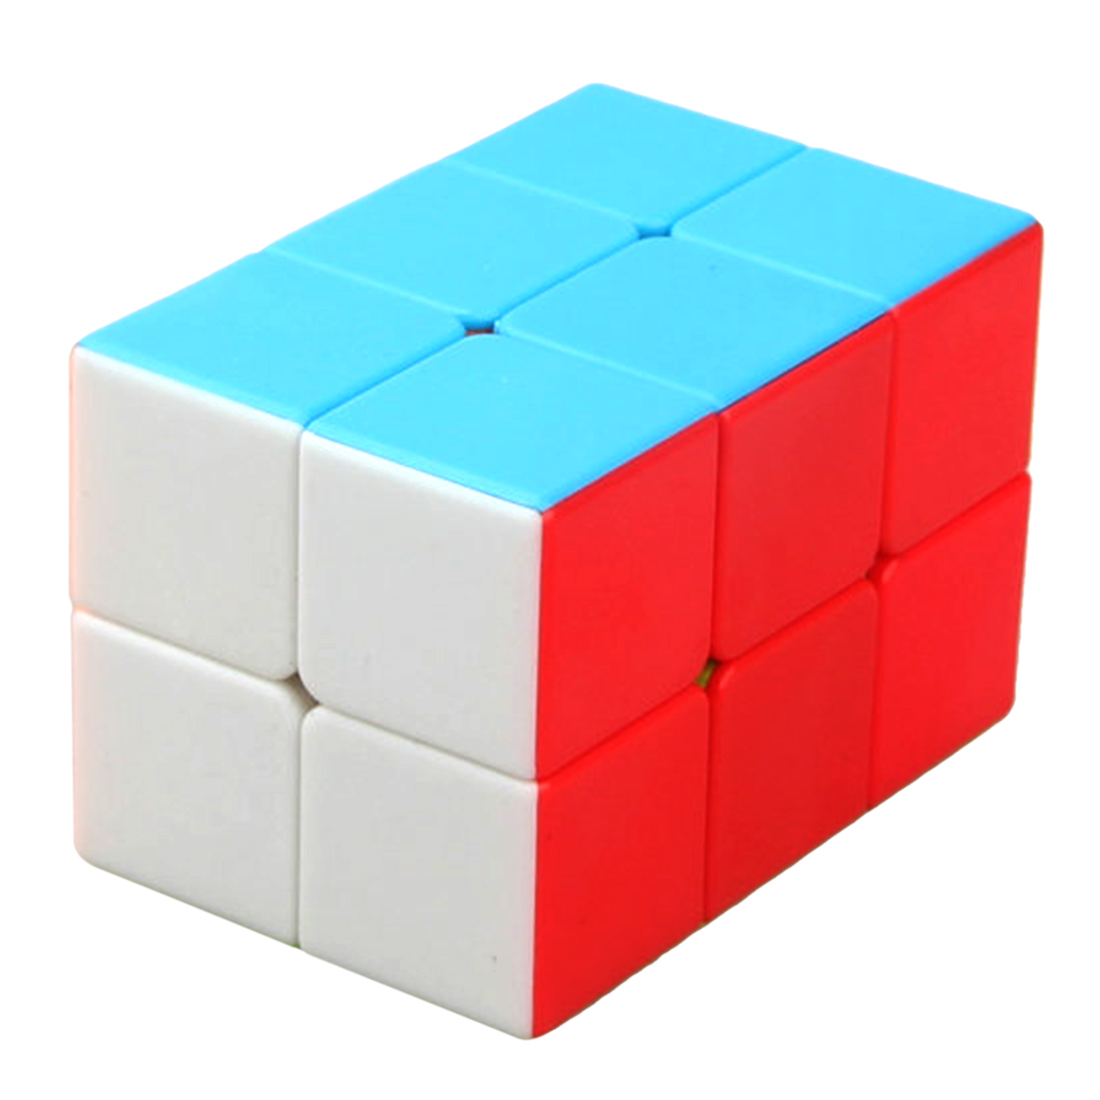 FanXin 2x2x3 Colorful Magic Cube Speed Cube Puzzle Fun Toys Twisty Learning & Educational Kids Good Gift Drop Shipping